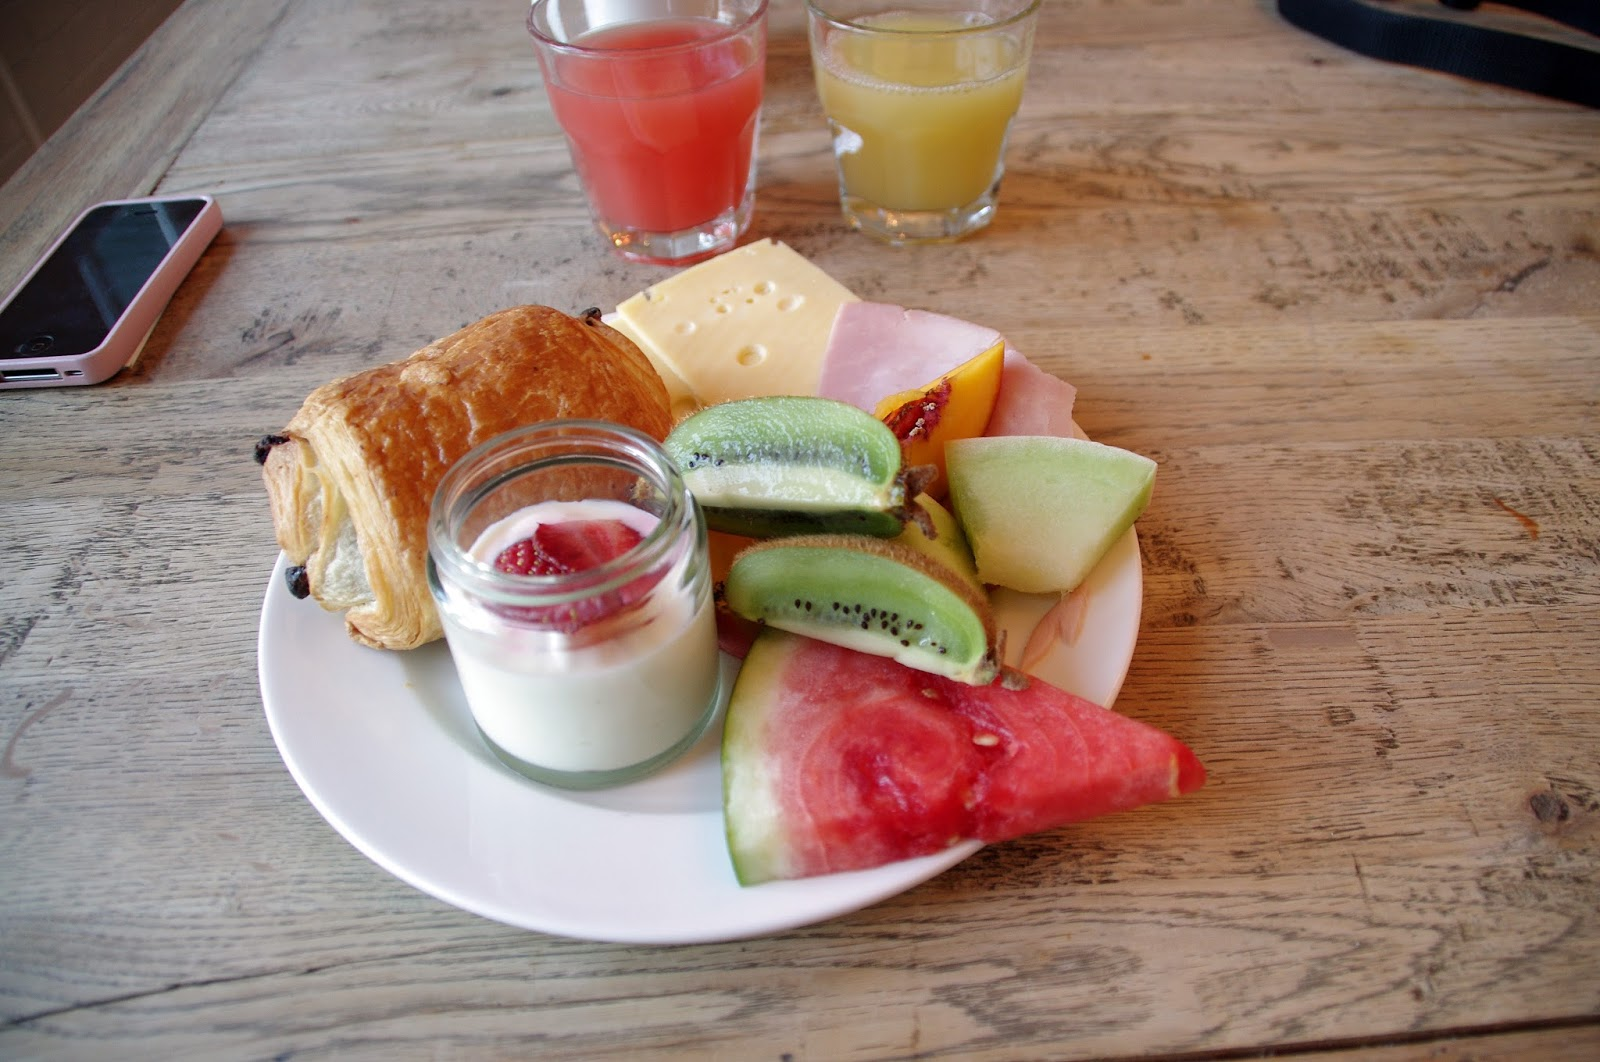 Delicious breakfast from watsons bay luxury hotel